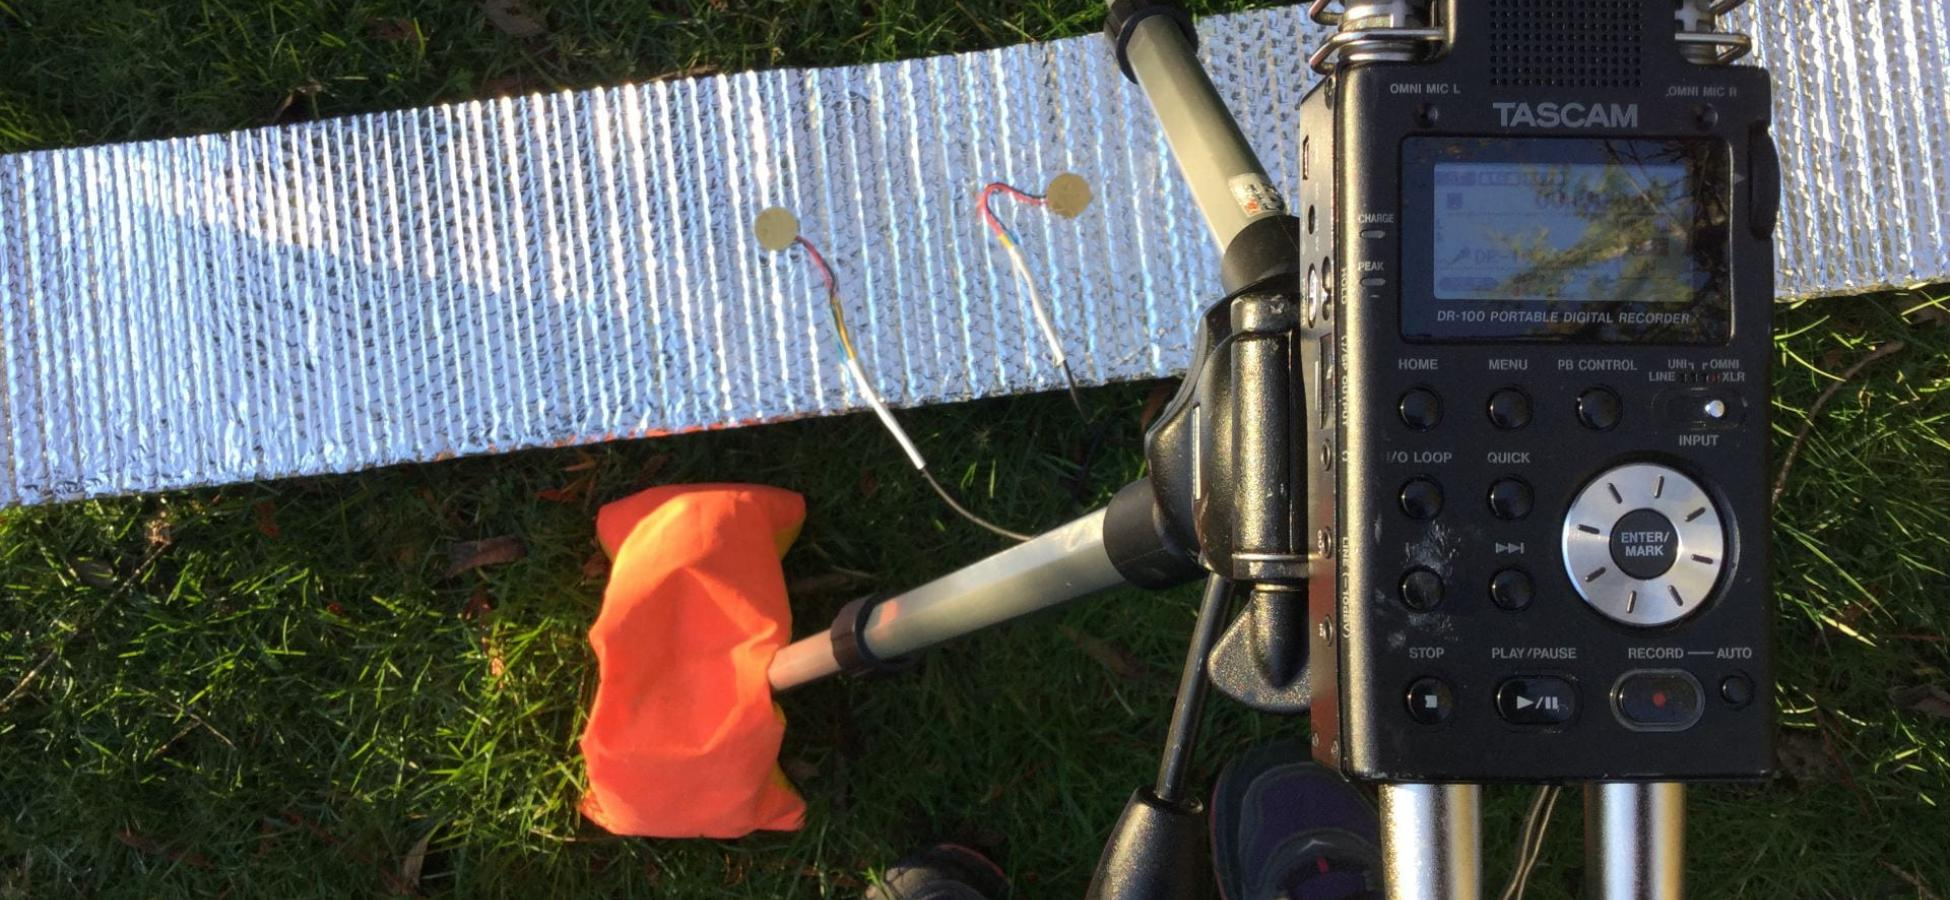 digital recorder, grass, something shiny on the grass